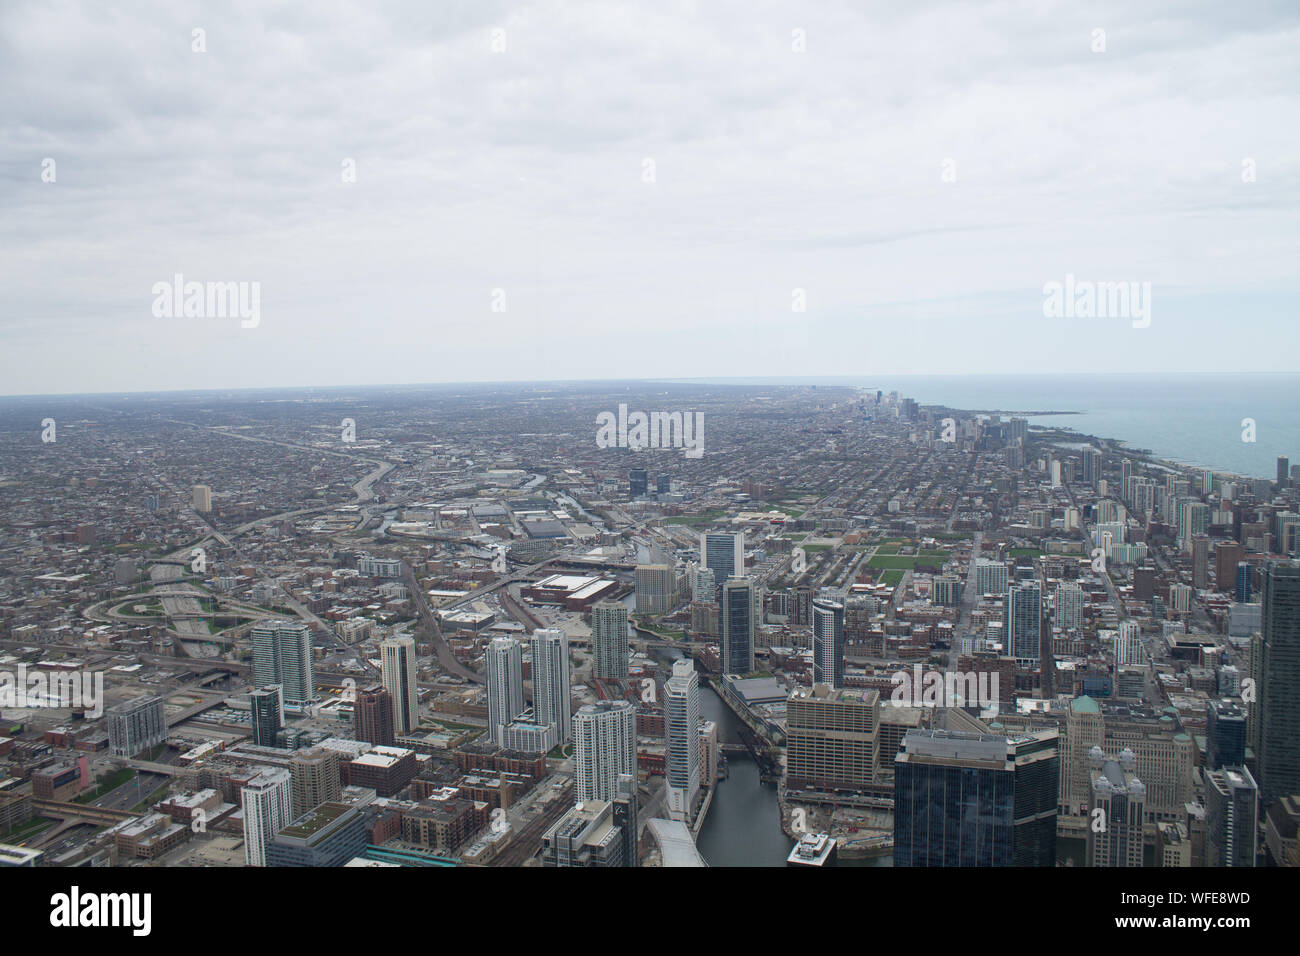 Aerial View Of Seaside Megalopolis Stock Photo